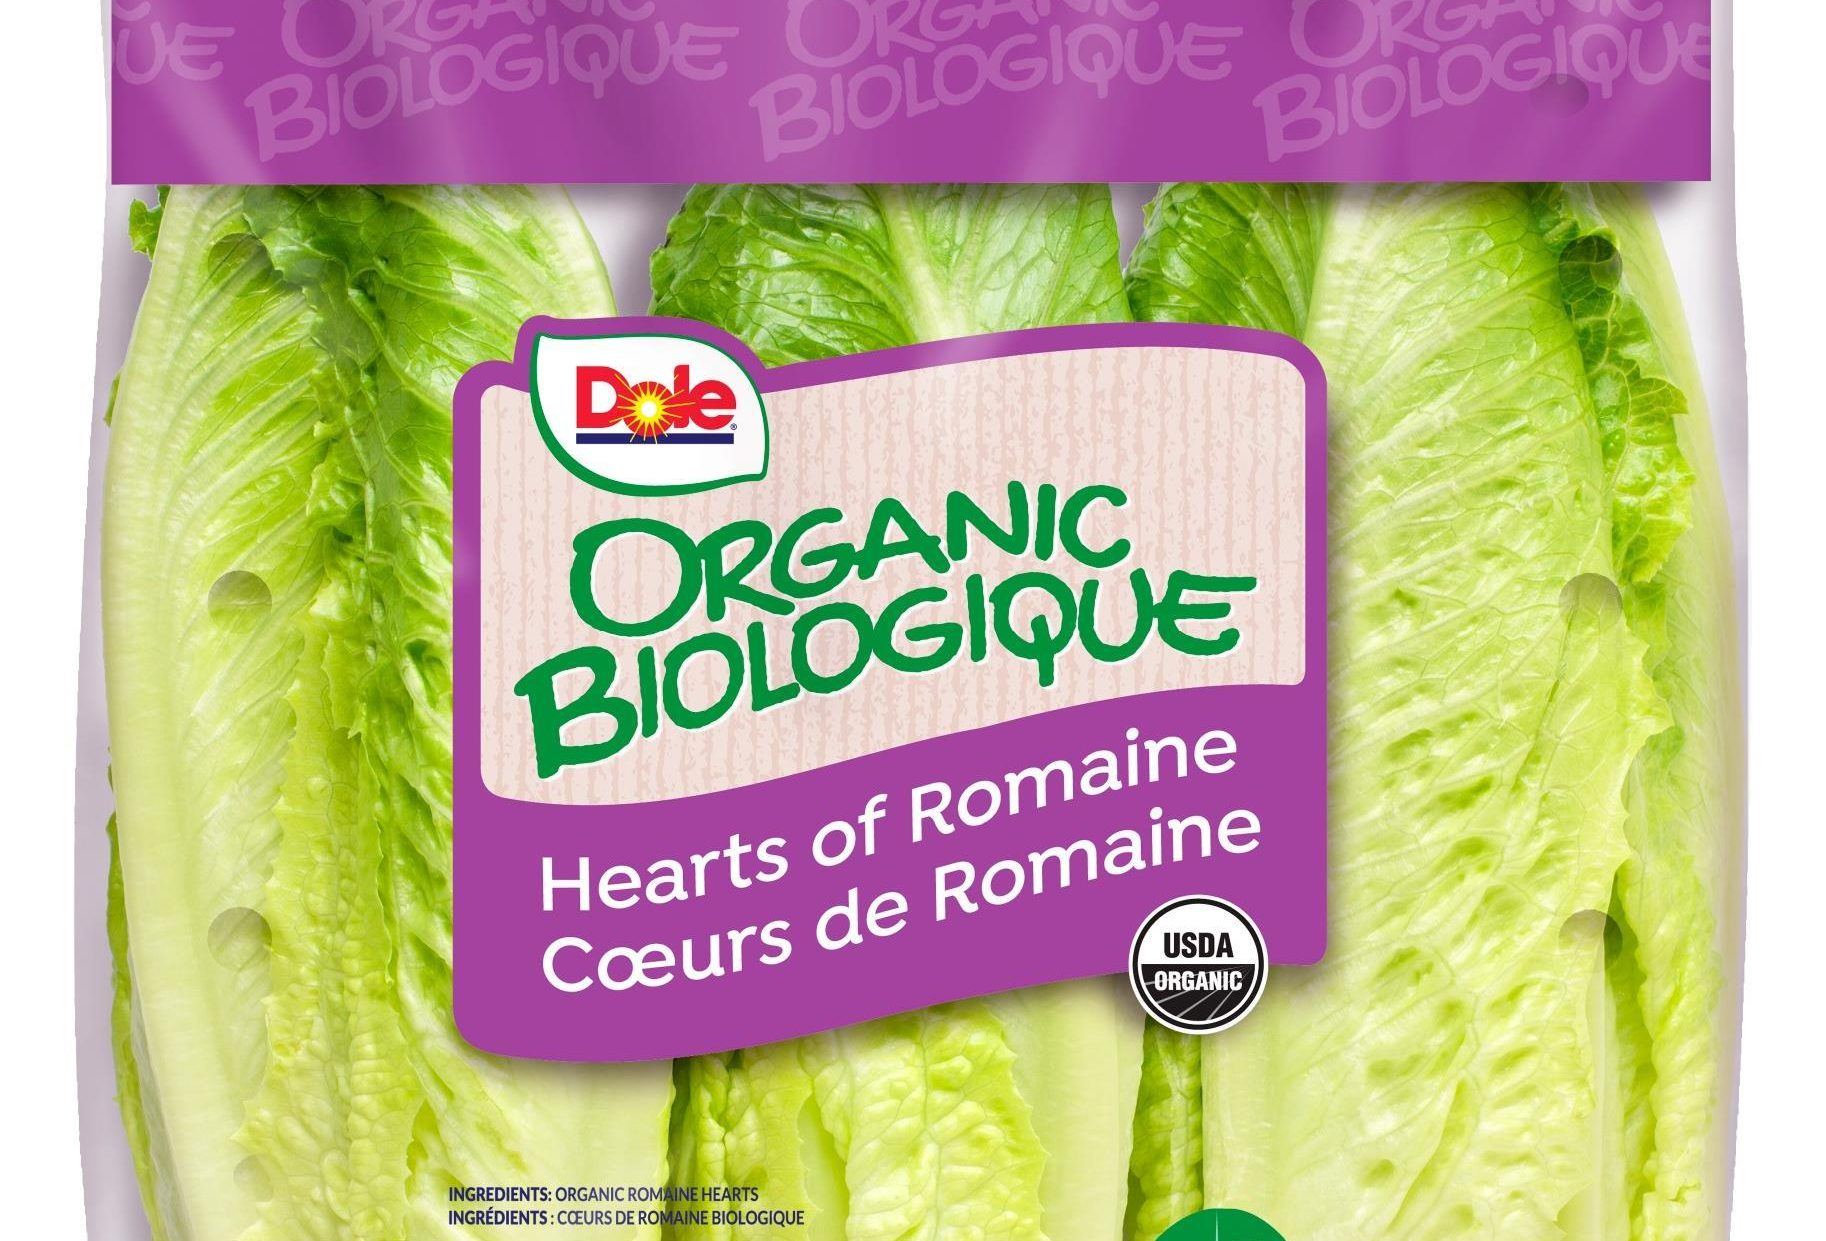 Dole romaine lettuce package